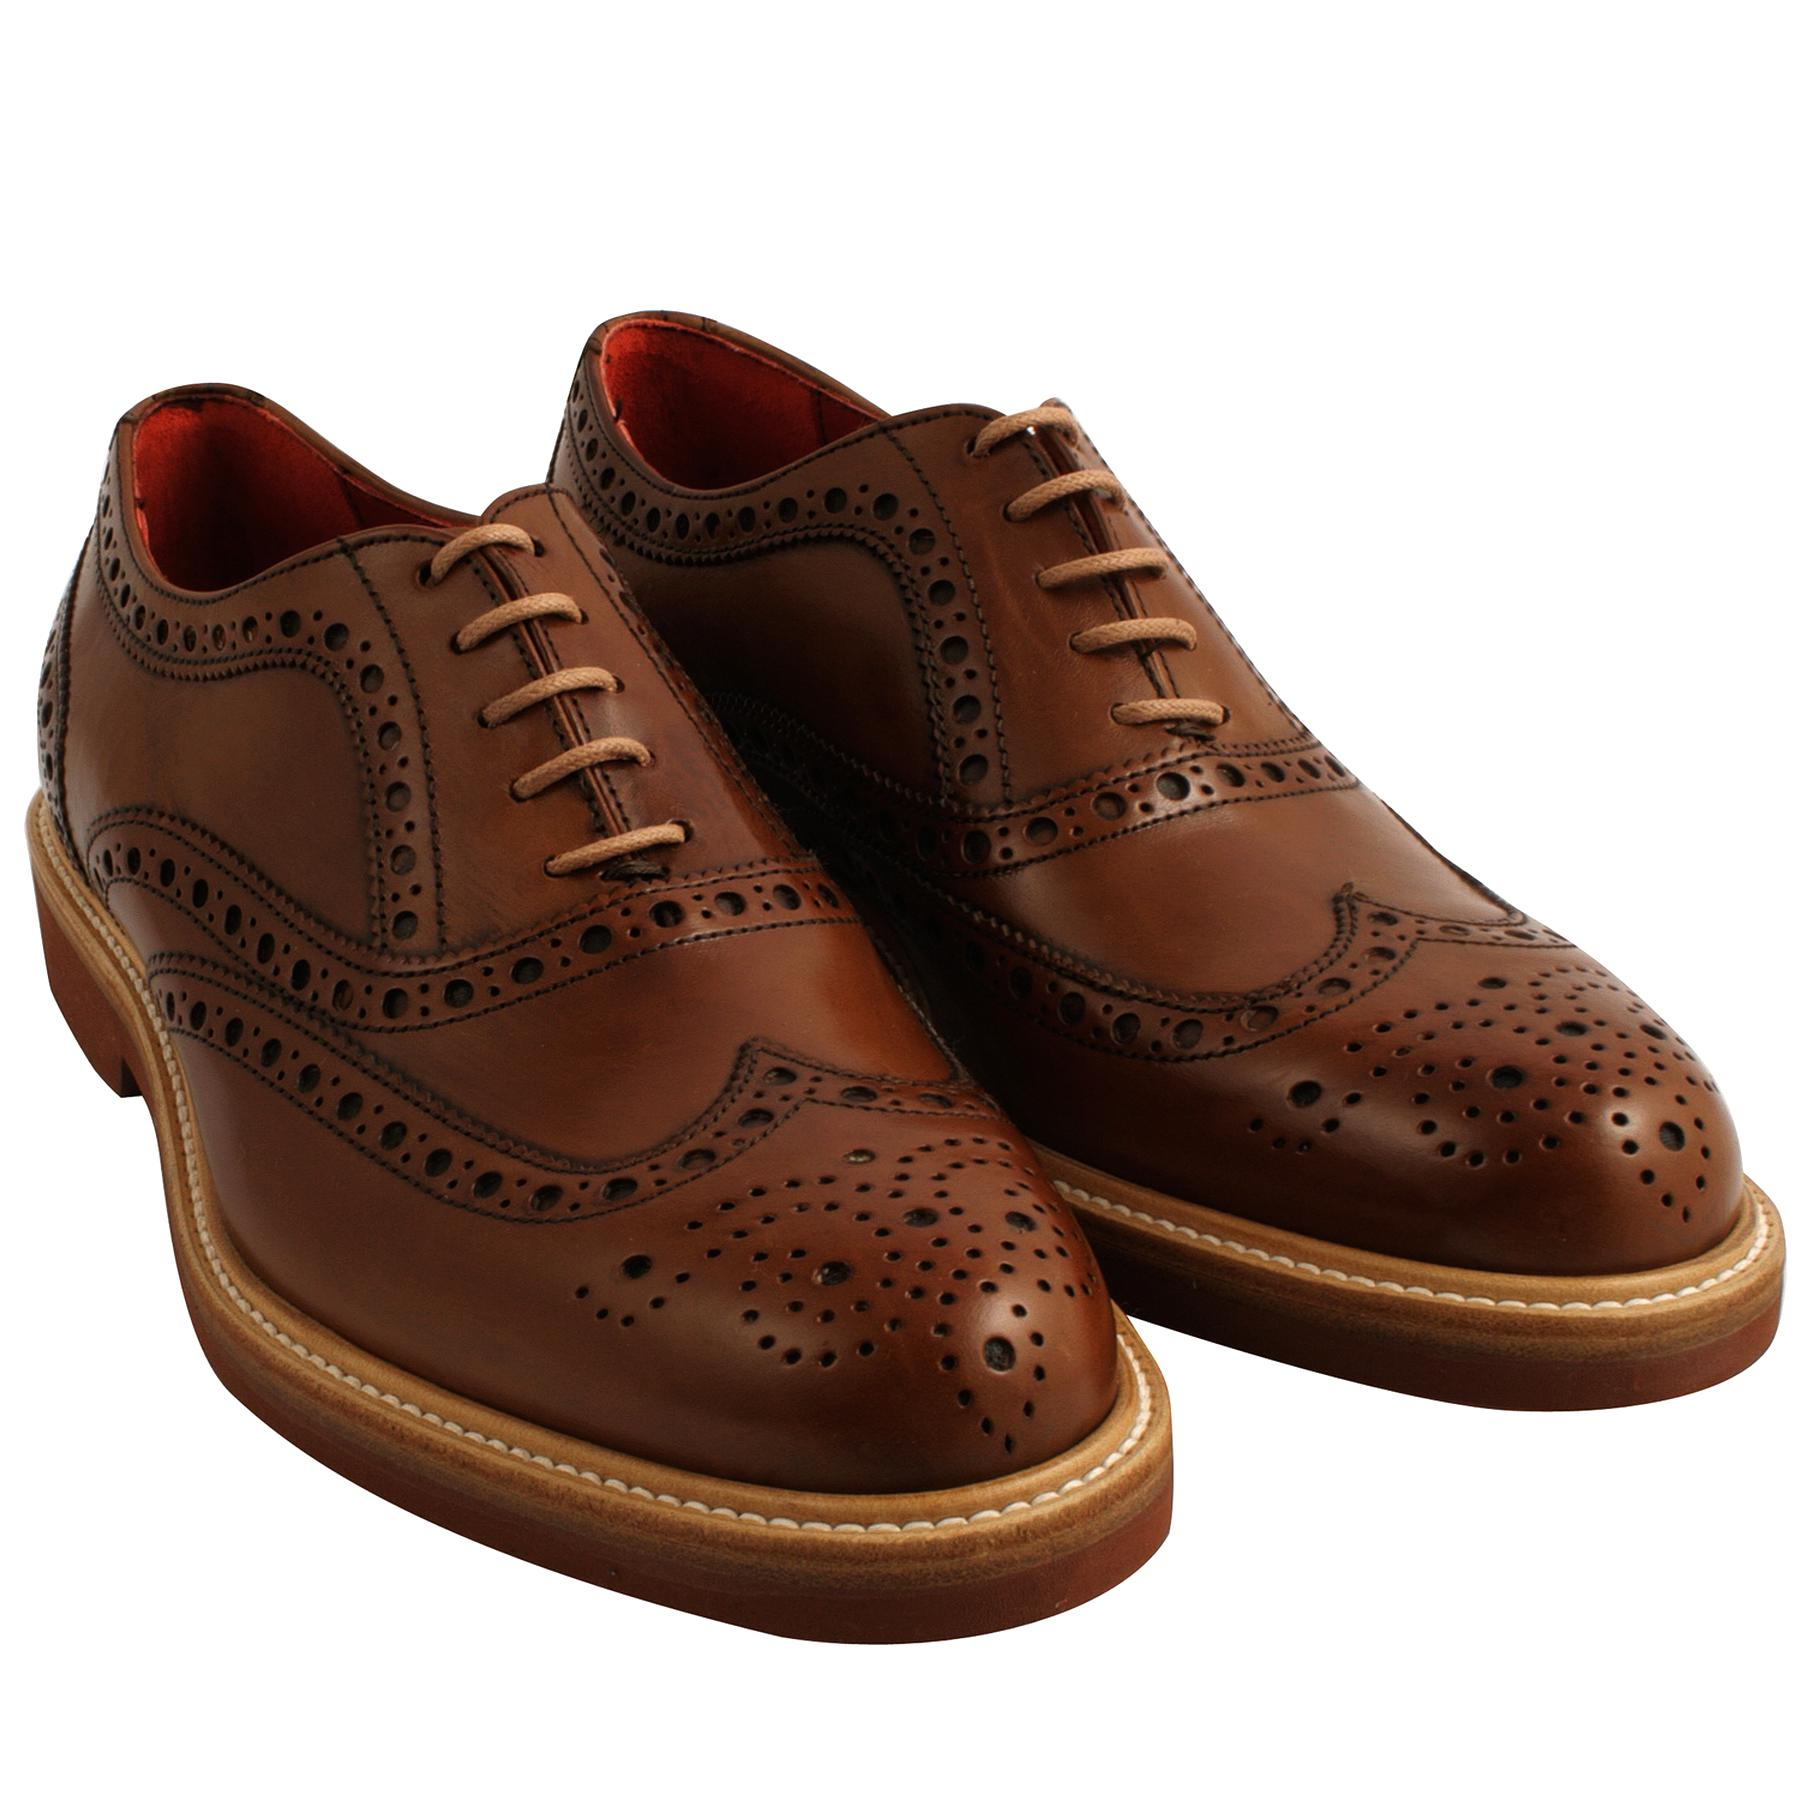 chaussure homme tout cuir d'occasion